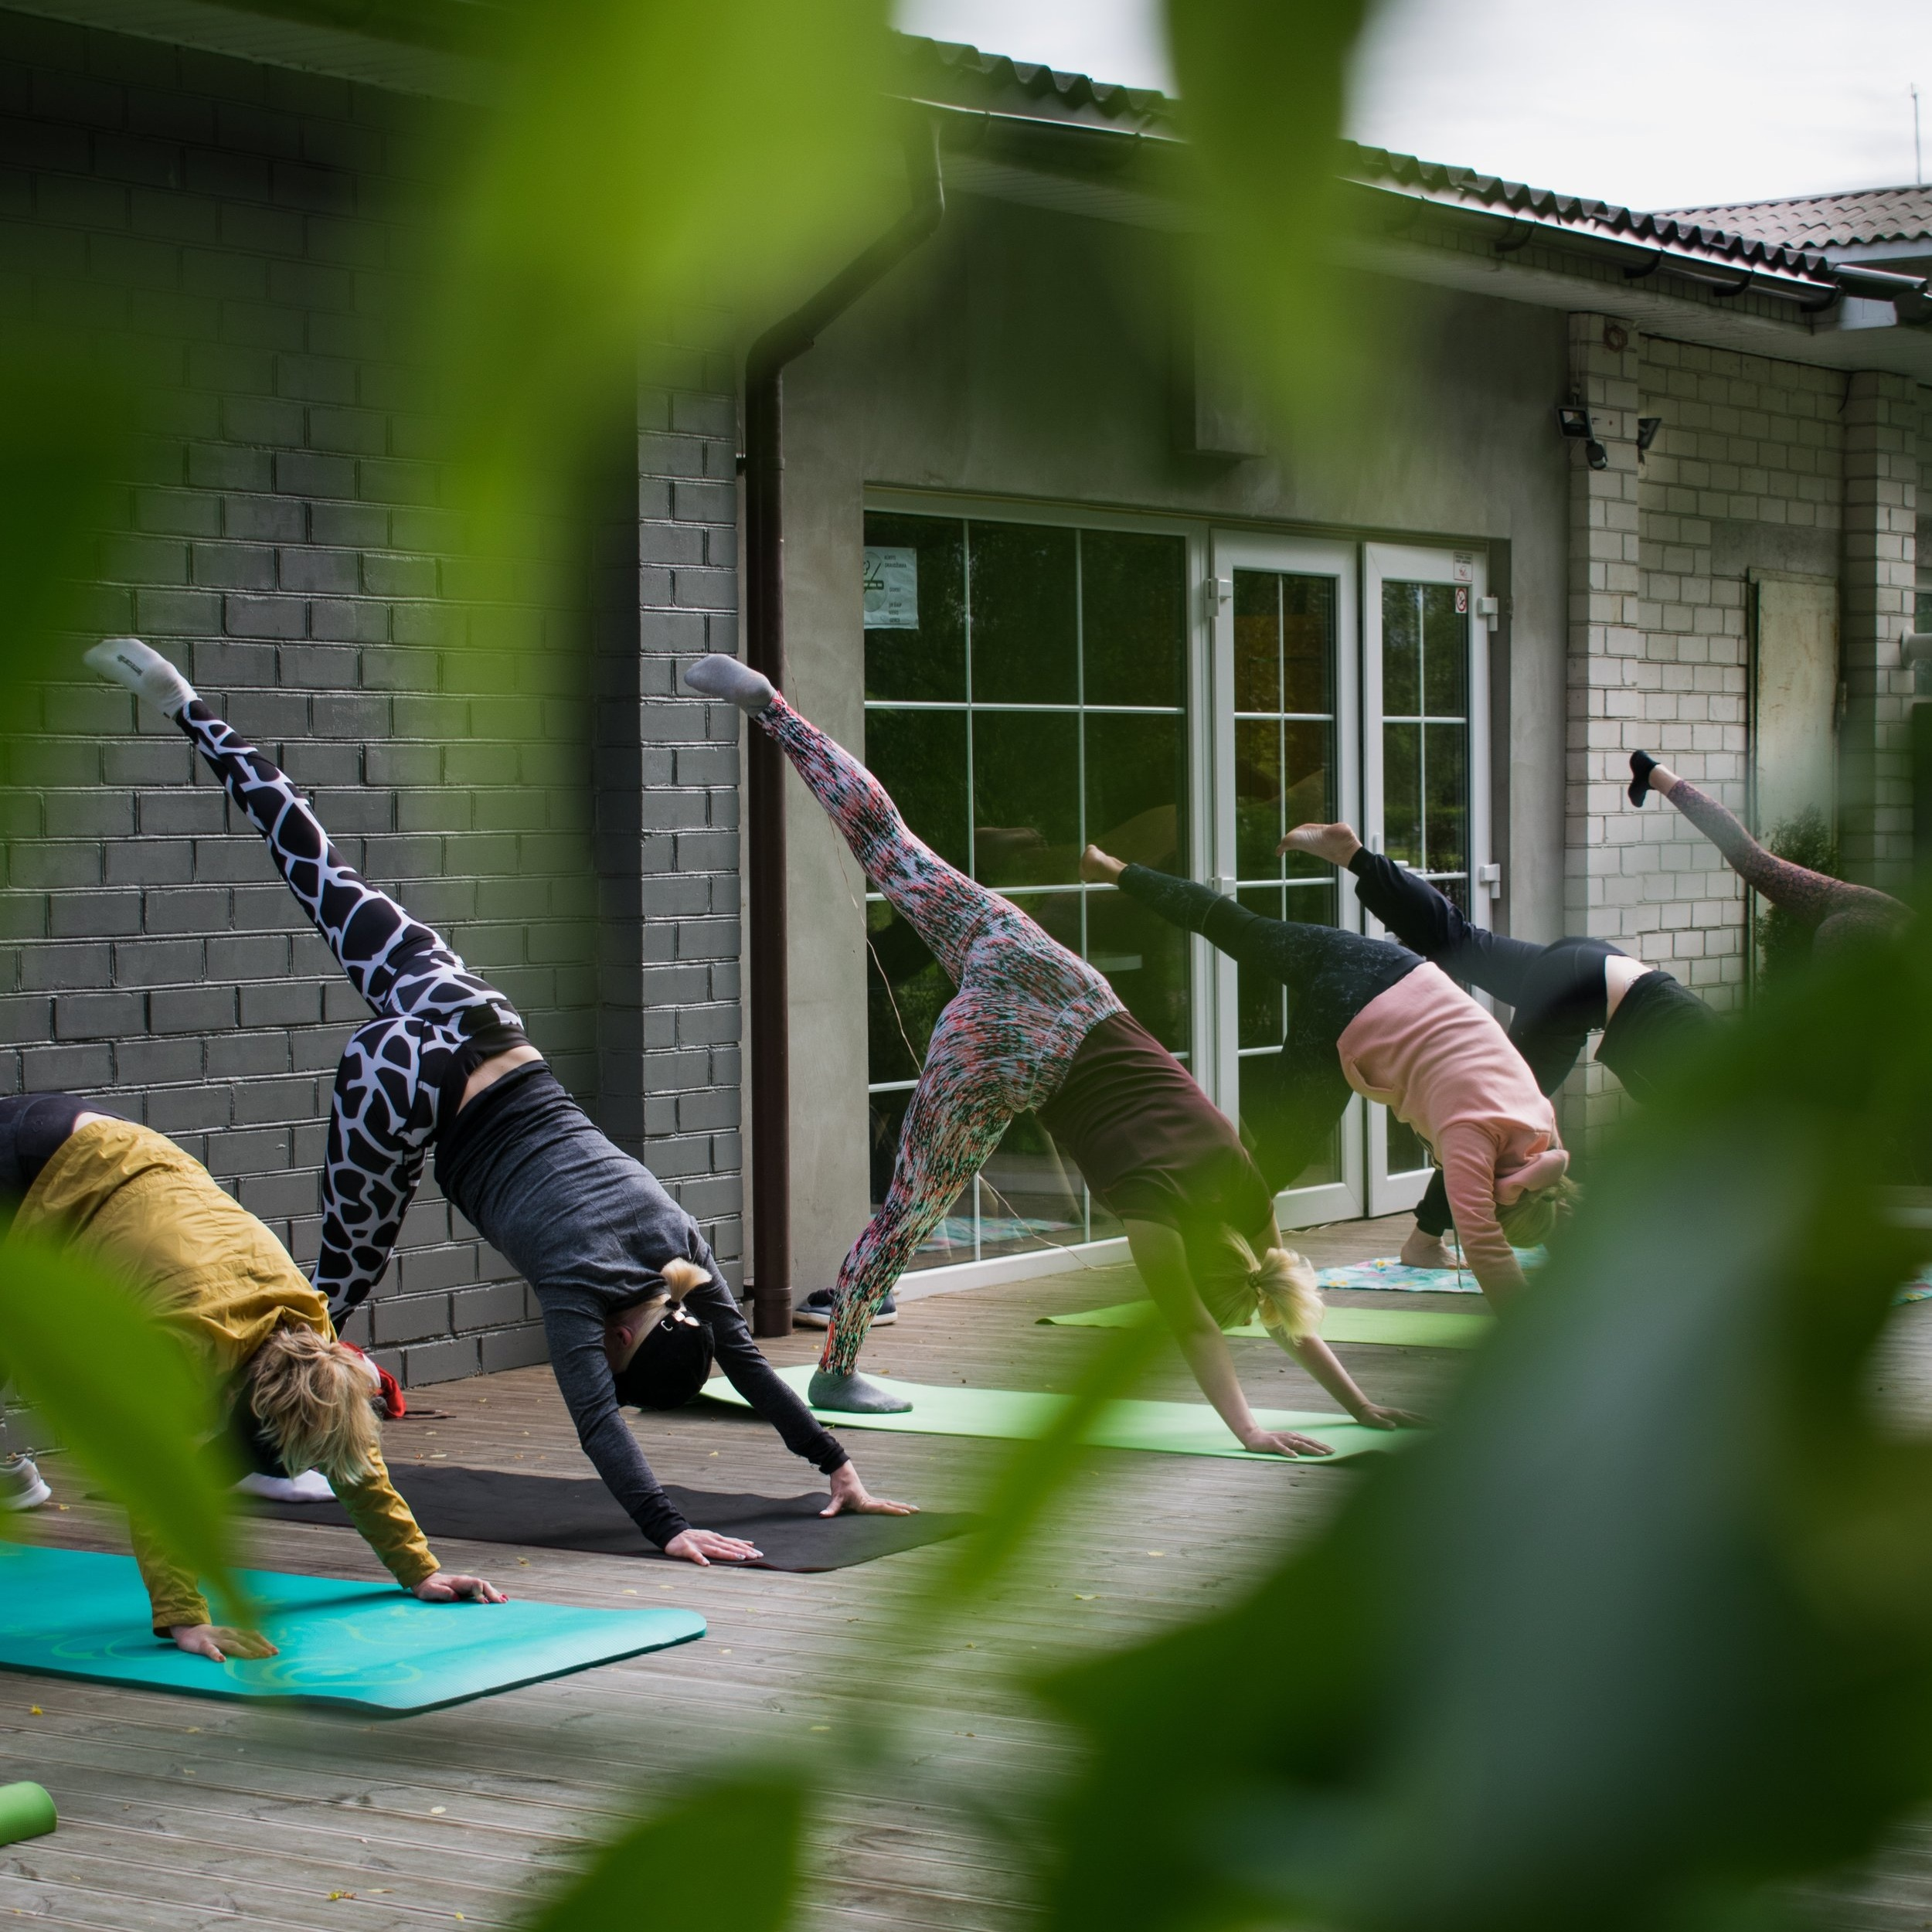 Classes - Start a yoga or meditation practice here! We have designed class packs for beginners, devoted yogis and those wanting a one-off class to see what yoga is all about. For corporate, conference & special event yoga, get in contact for a quote.